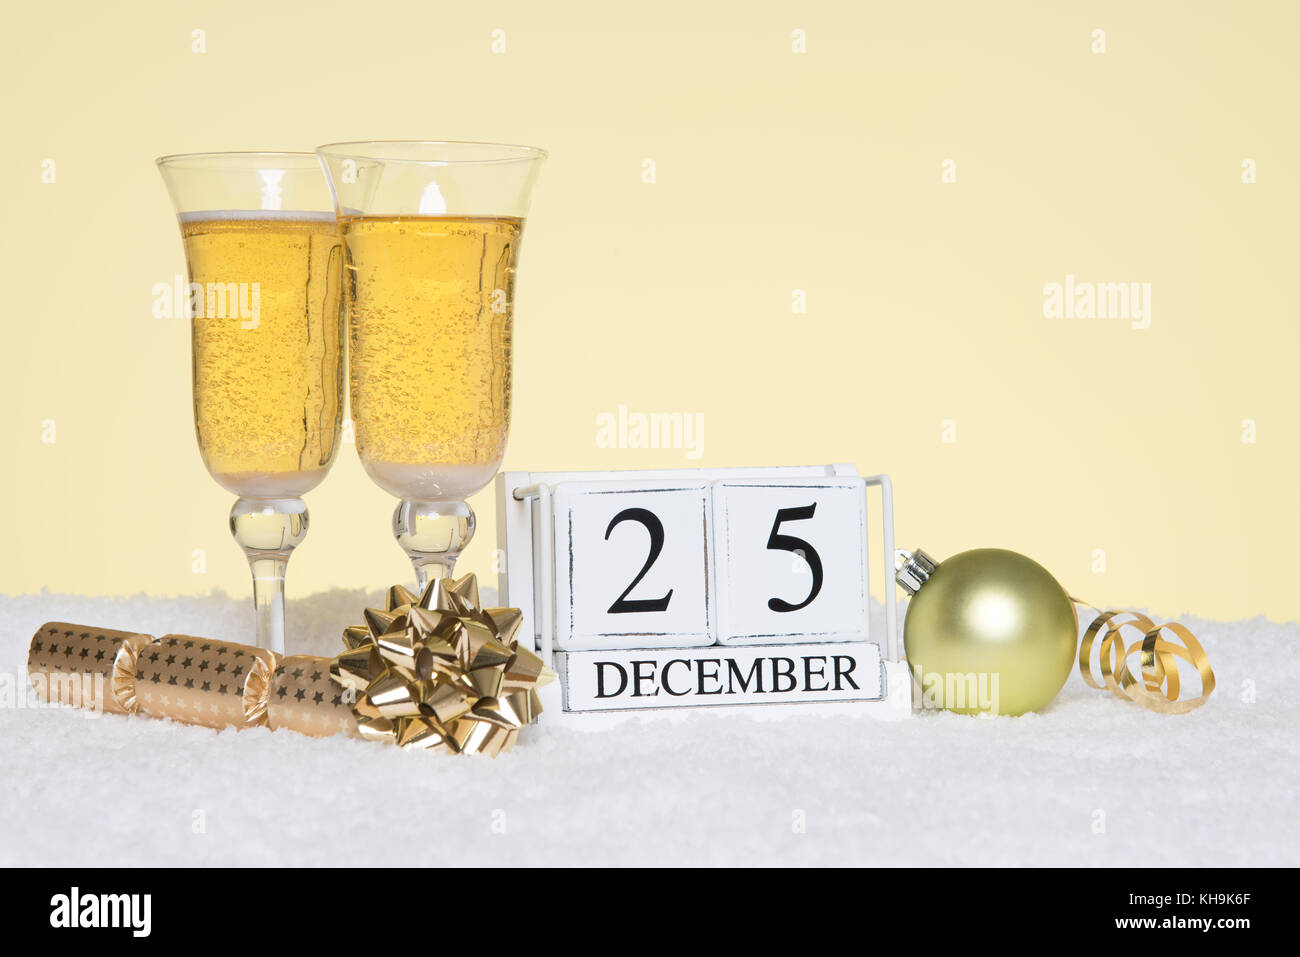 Christmas party still life with two glasses of Champagne and a date block showing 25th December. Copy space on the Stock Photo